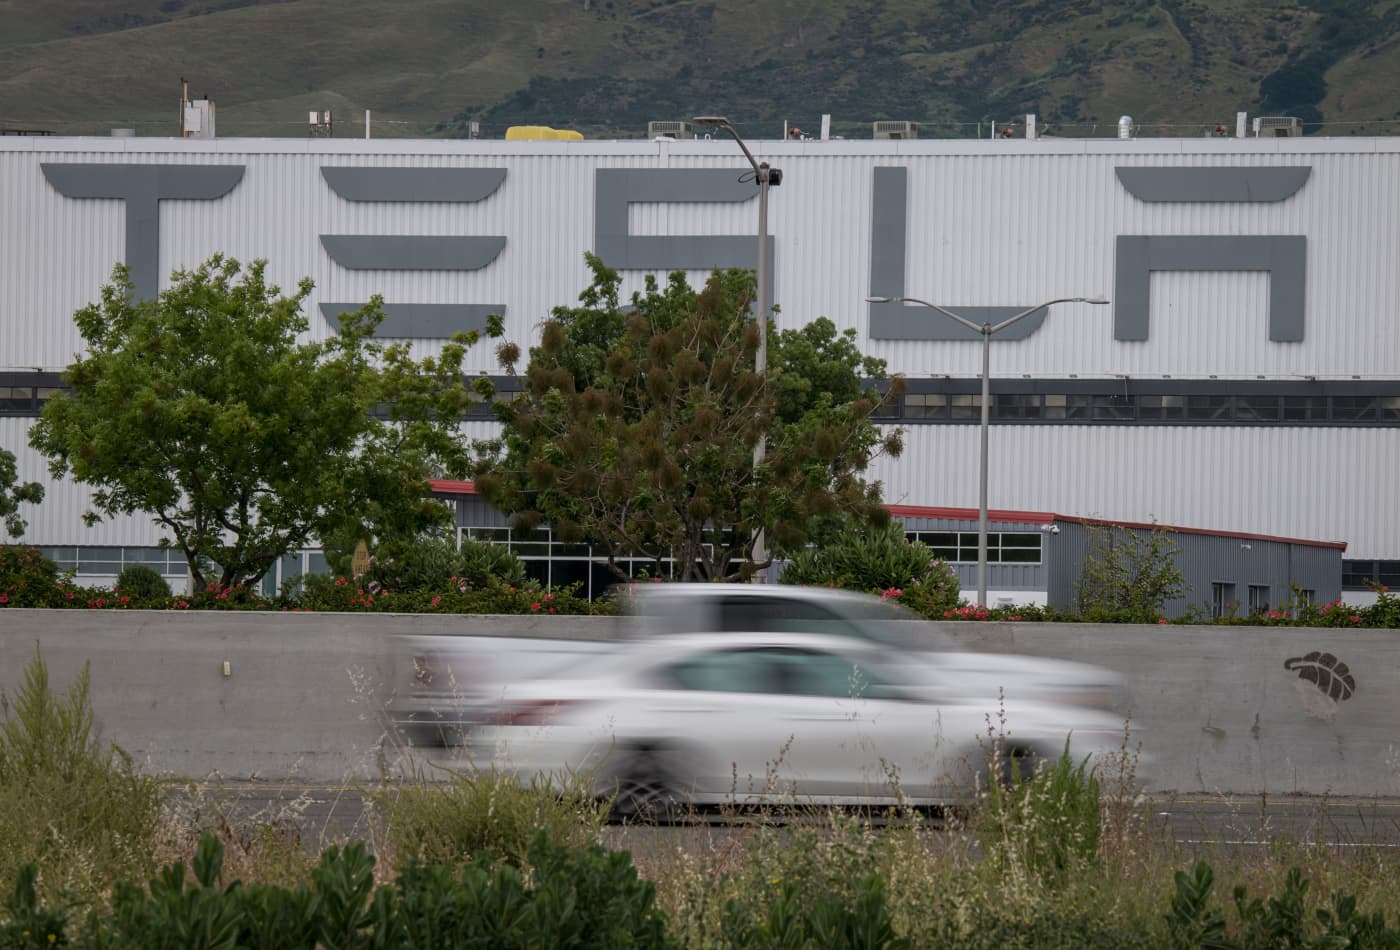 Tesla publishes its first ever diversity report revealing leadership is 83% male and 59% White